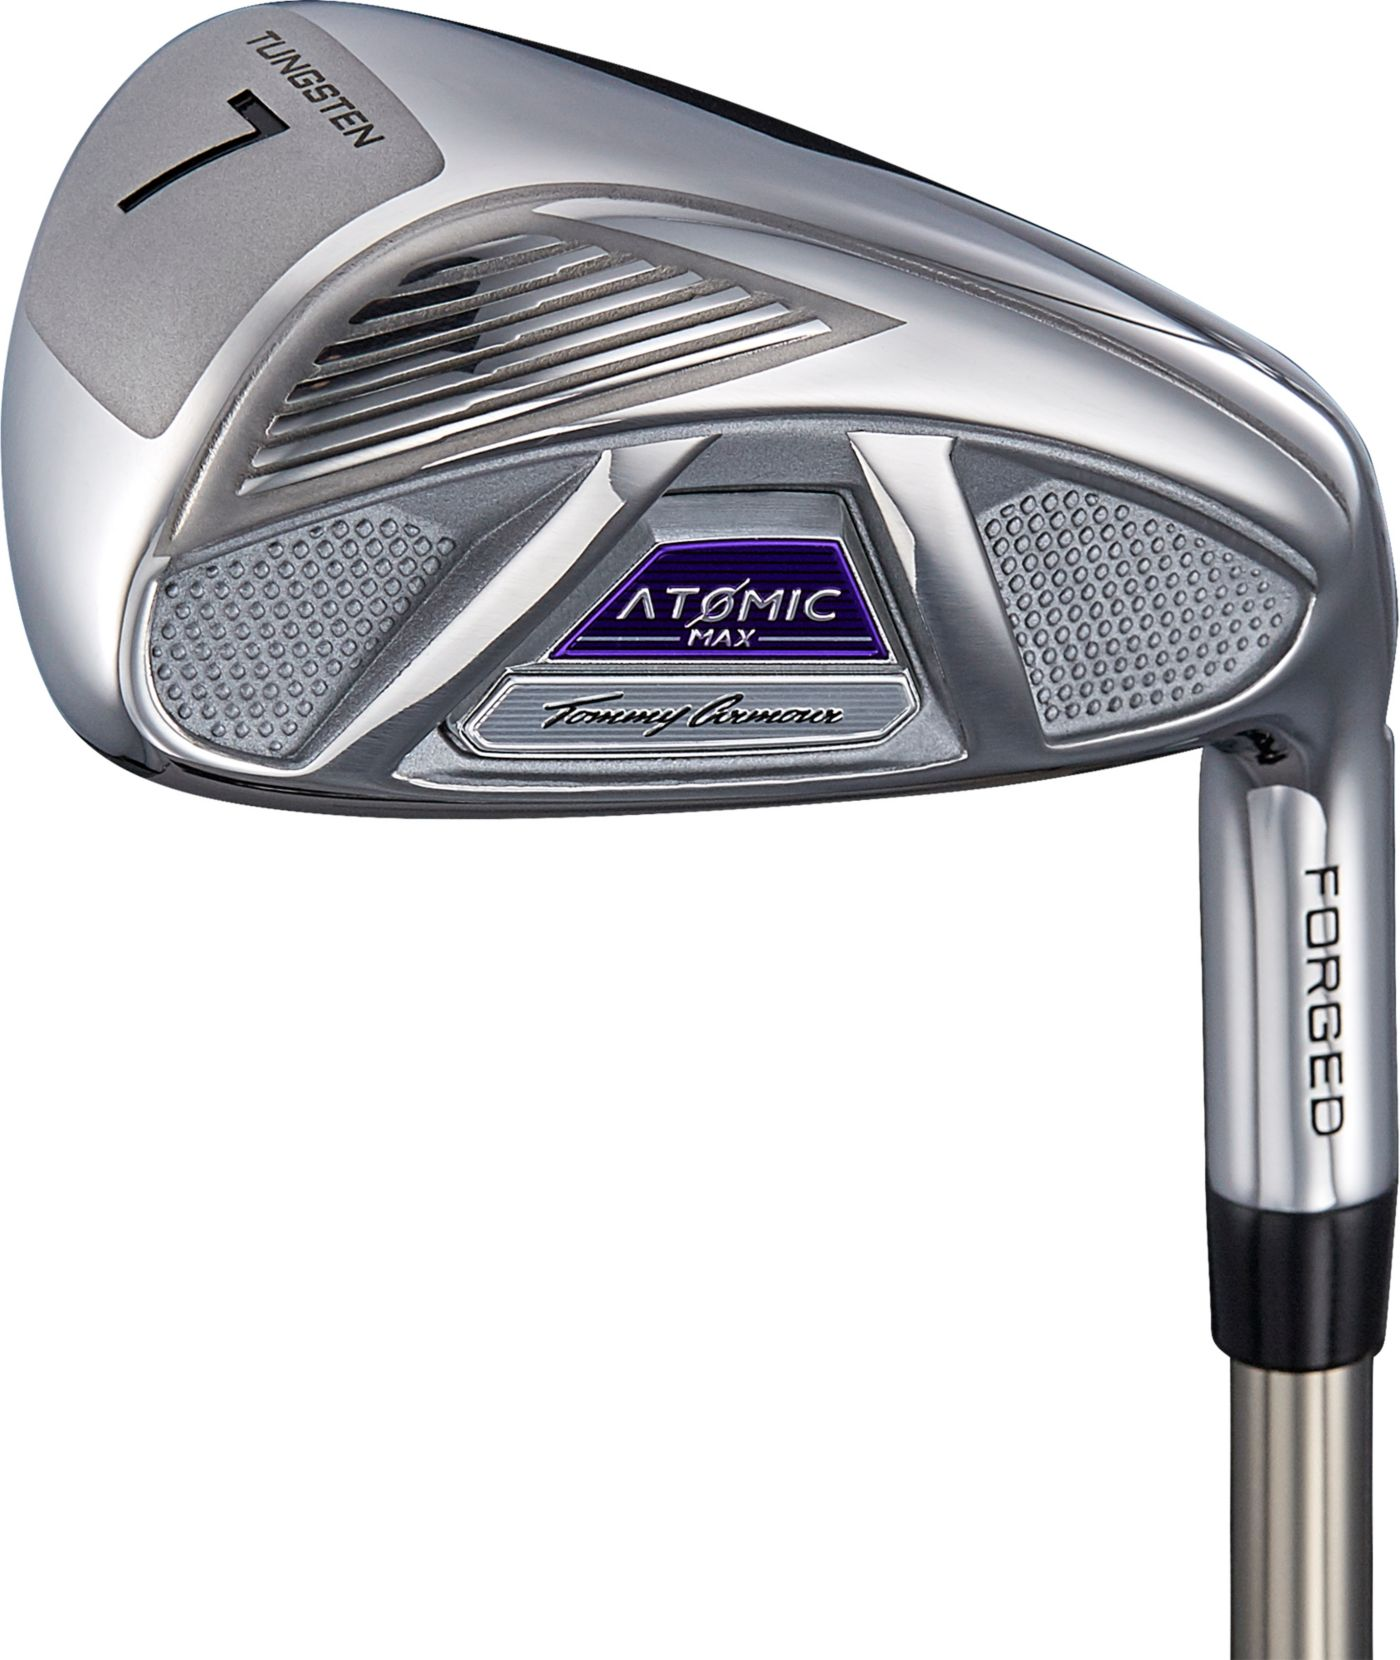 Tommy Armour Women's ATOMIC MAX Irons – (Graphite)